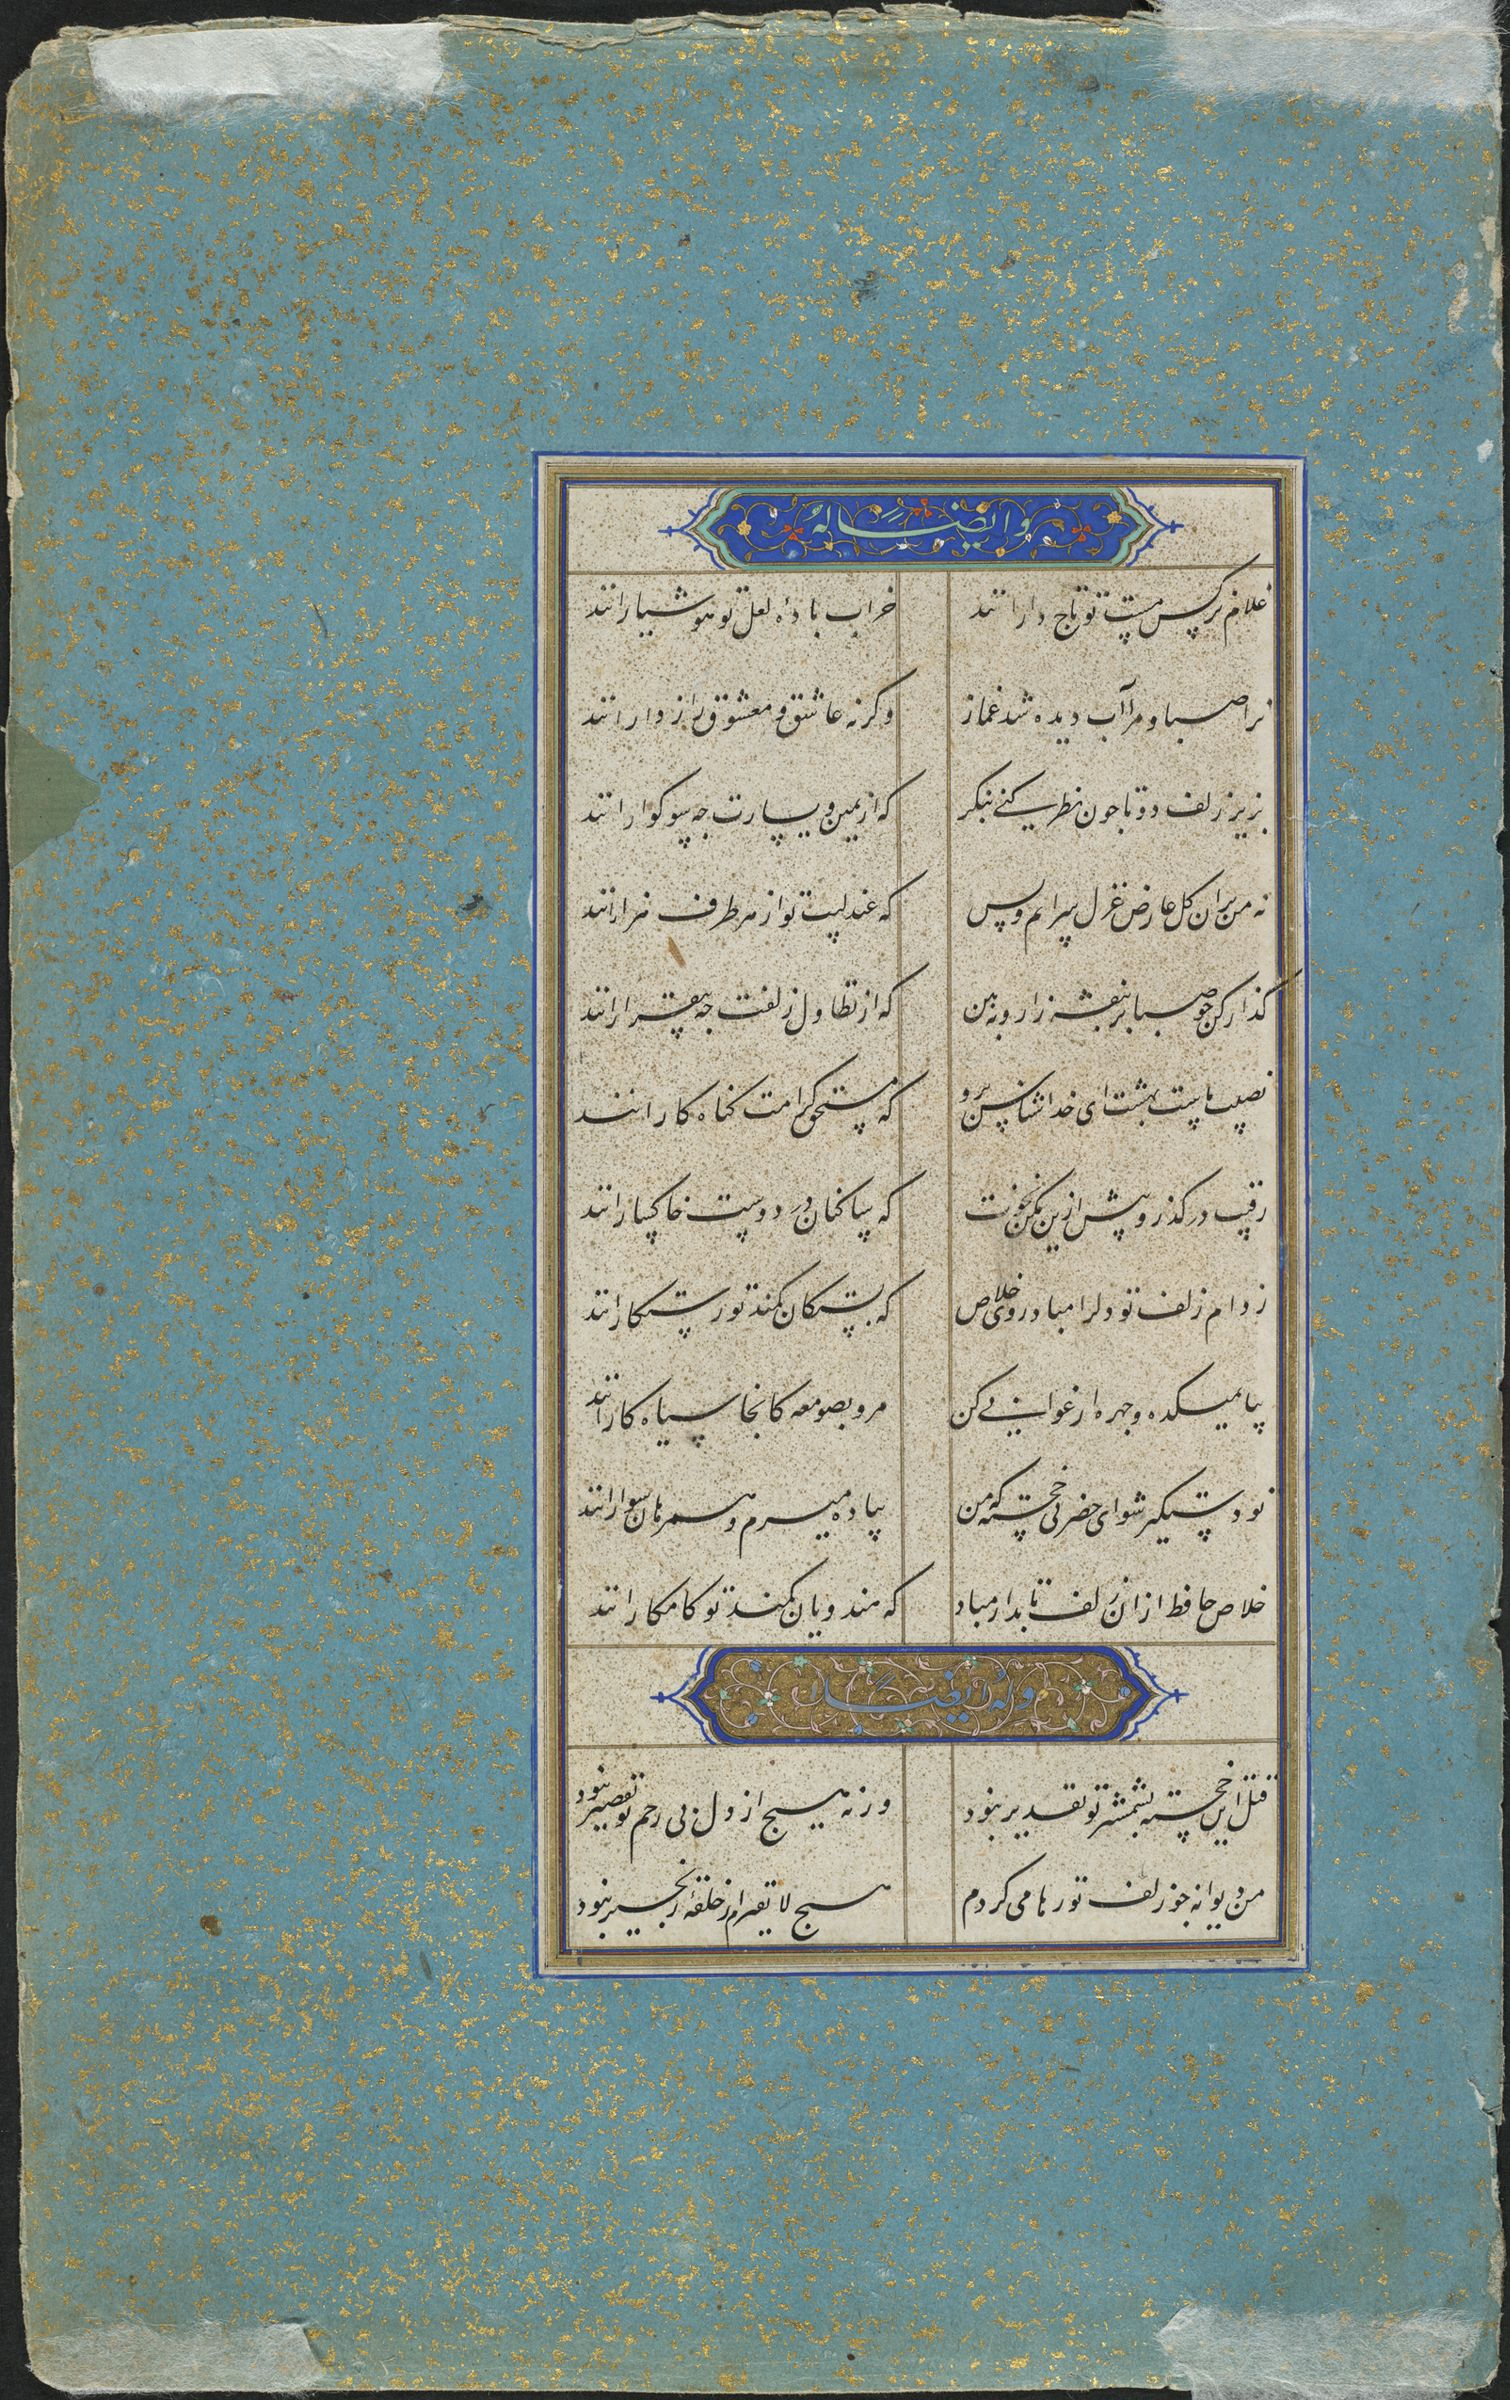 Text (Recto And Verso), Folio 76R From A Divan (Collected Works) Of Hafiz, Right-Hand Side Of A Bifolo.